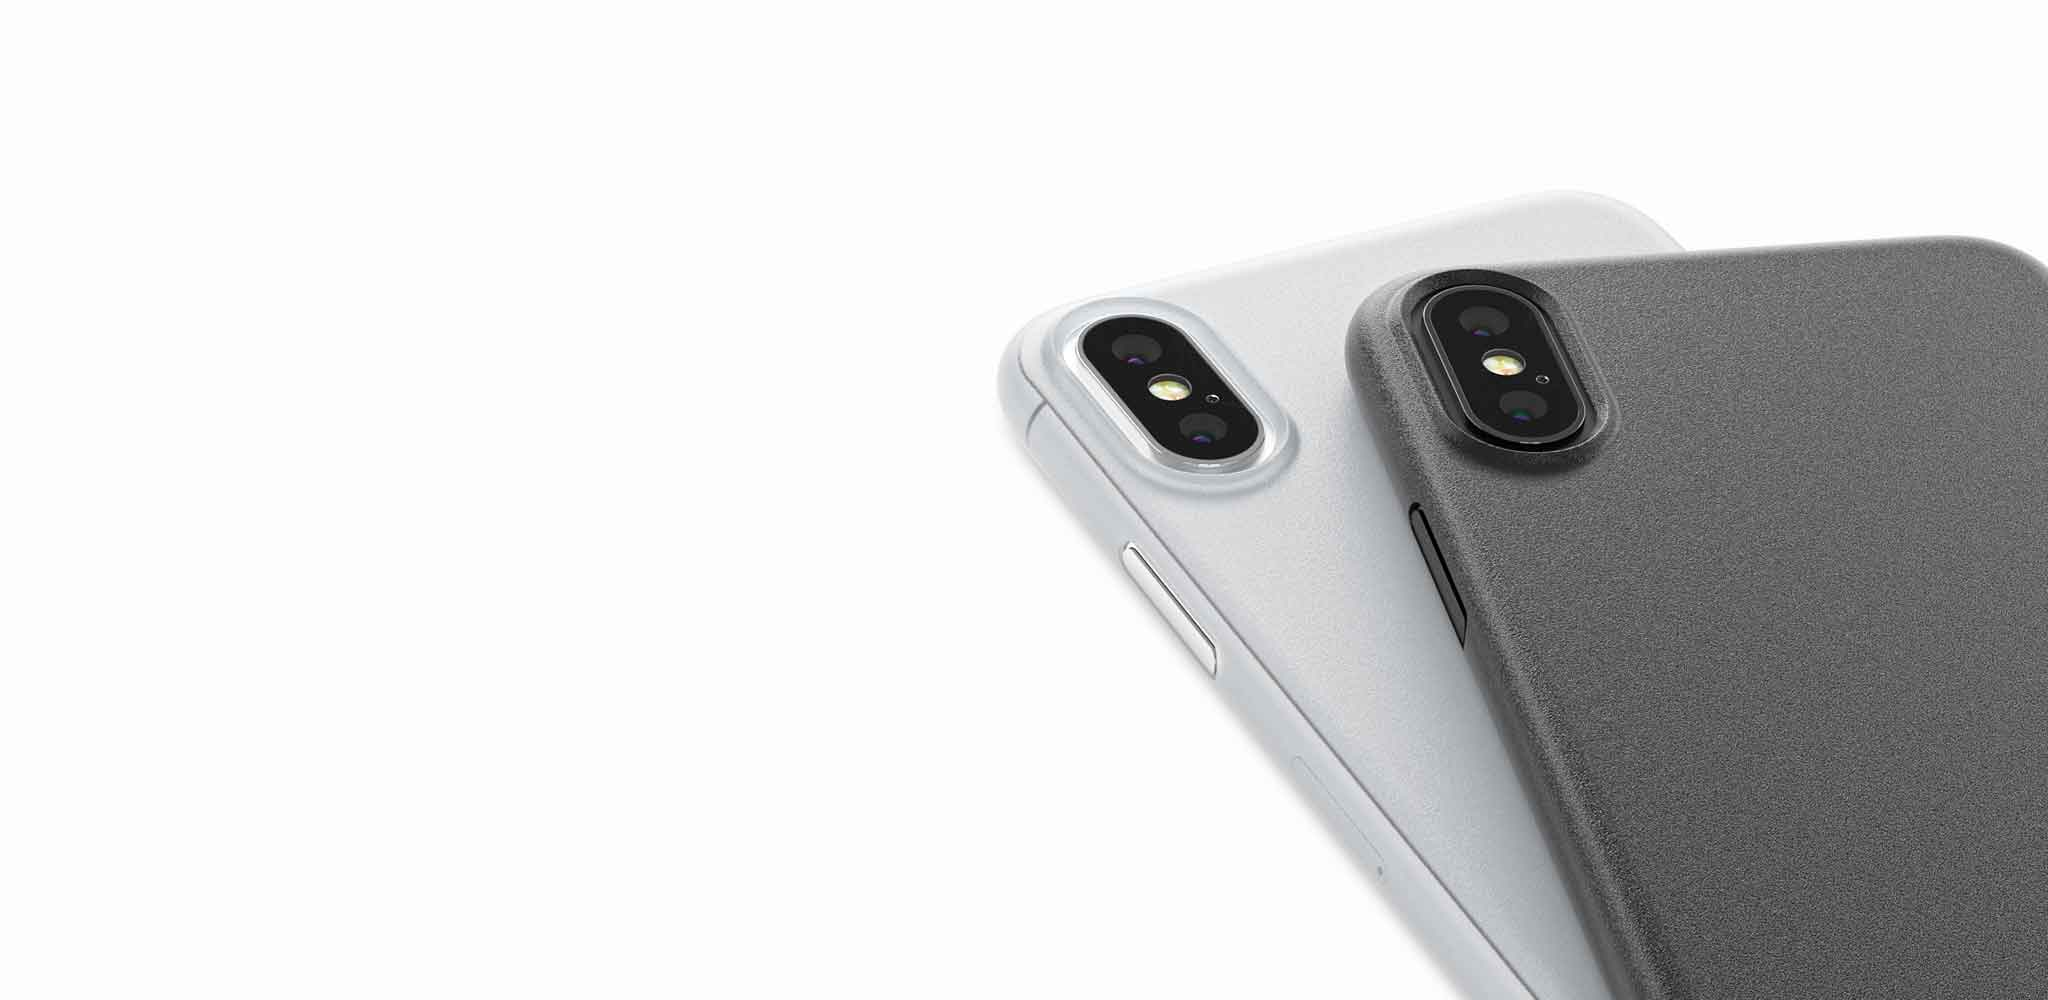 The Veil XT for iPhone X